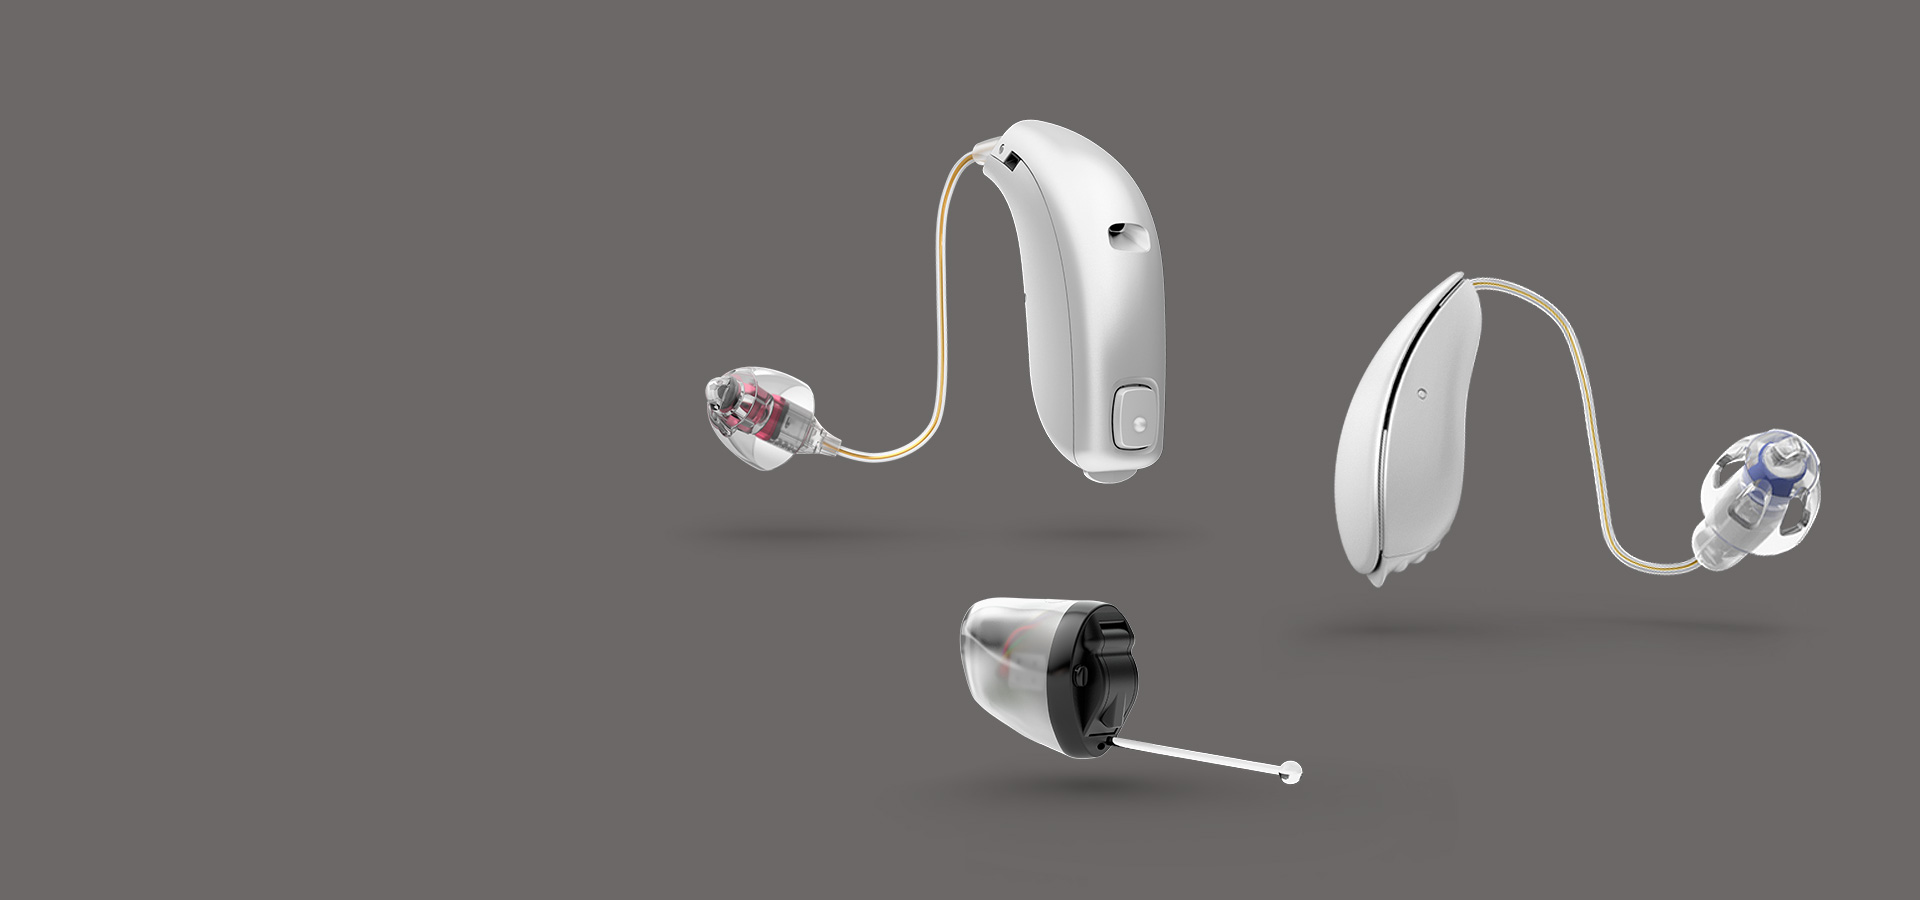 bannerspot-homepage-collage of three hearing aid styles-1920x900